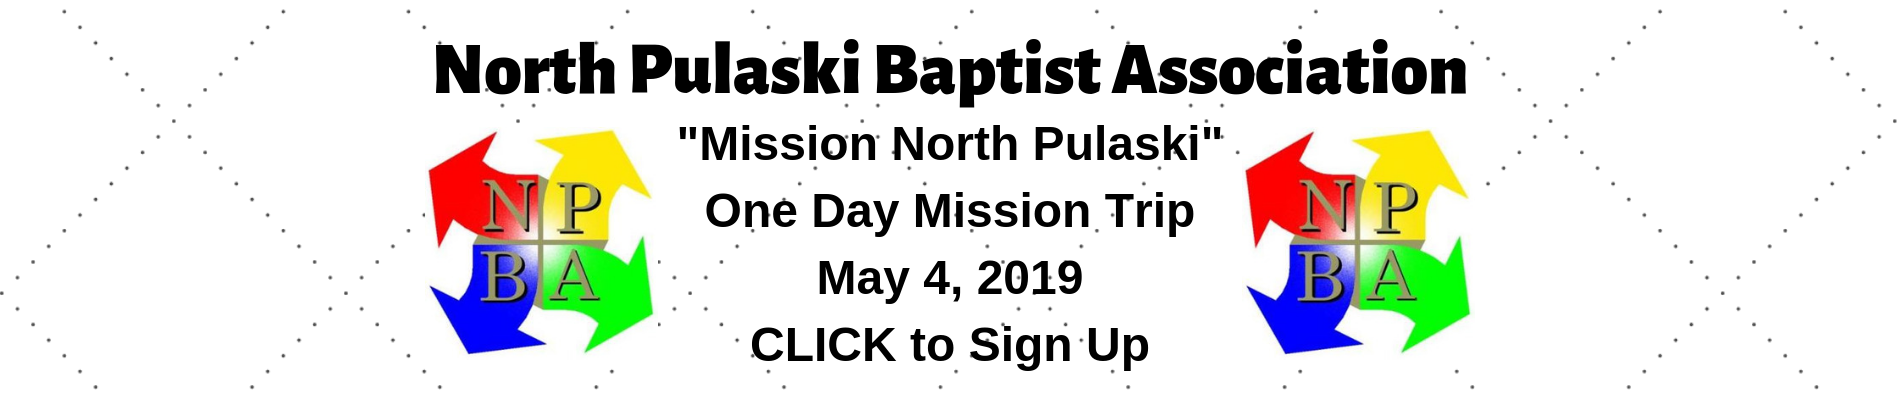 North Pulaski Baptist Association Mission North Pulaski One Day Mission Trip May 4, 2019 CLICK to Sign Up